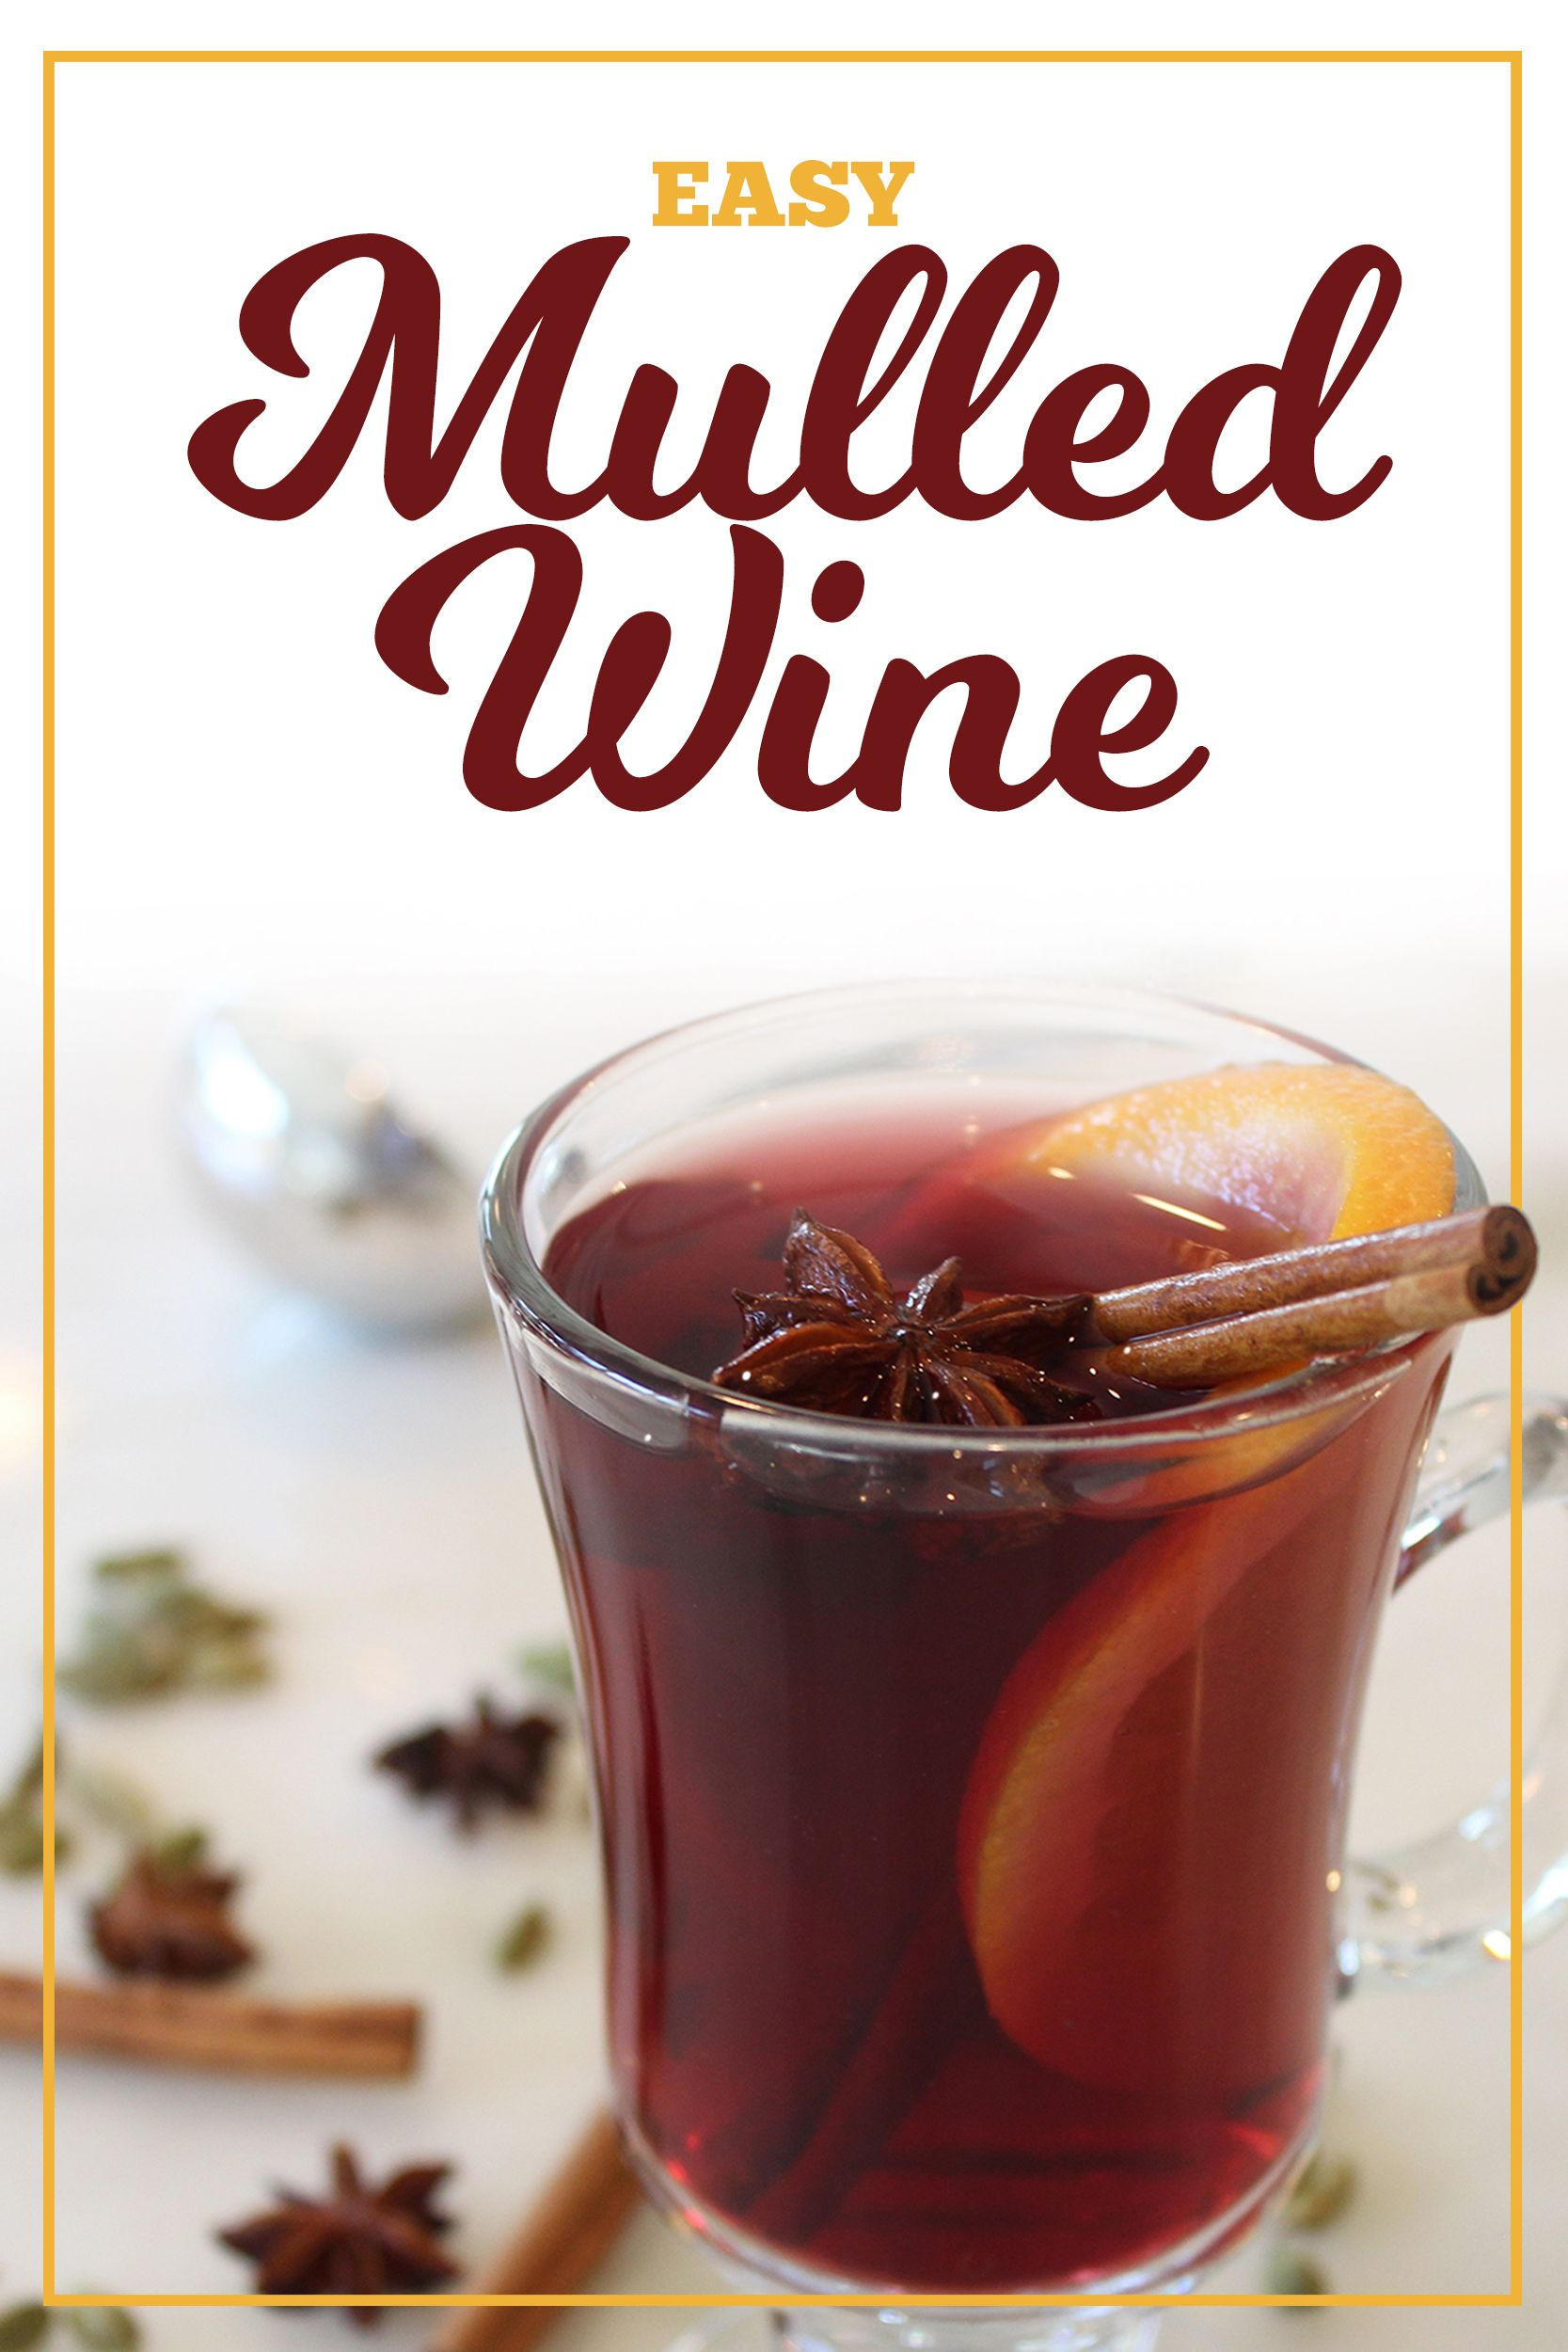 This Is The Easiest Mulled Wine Recipe Ever Recipe Mulled Wine Recipe Recipes Cozy Drinks